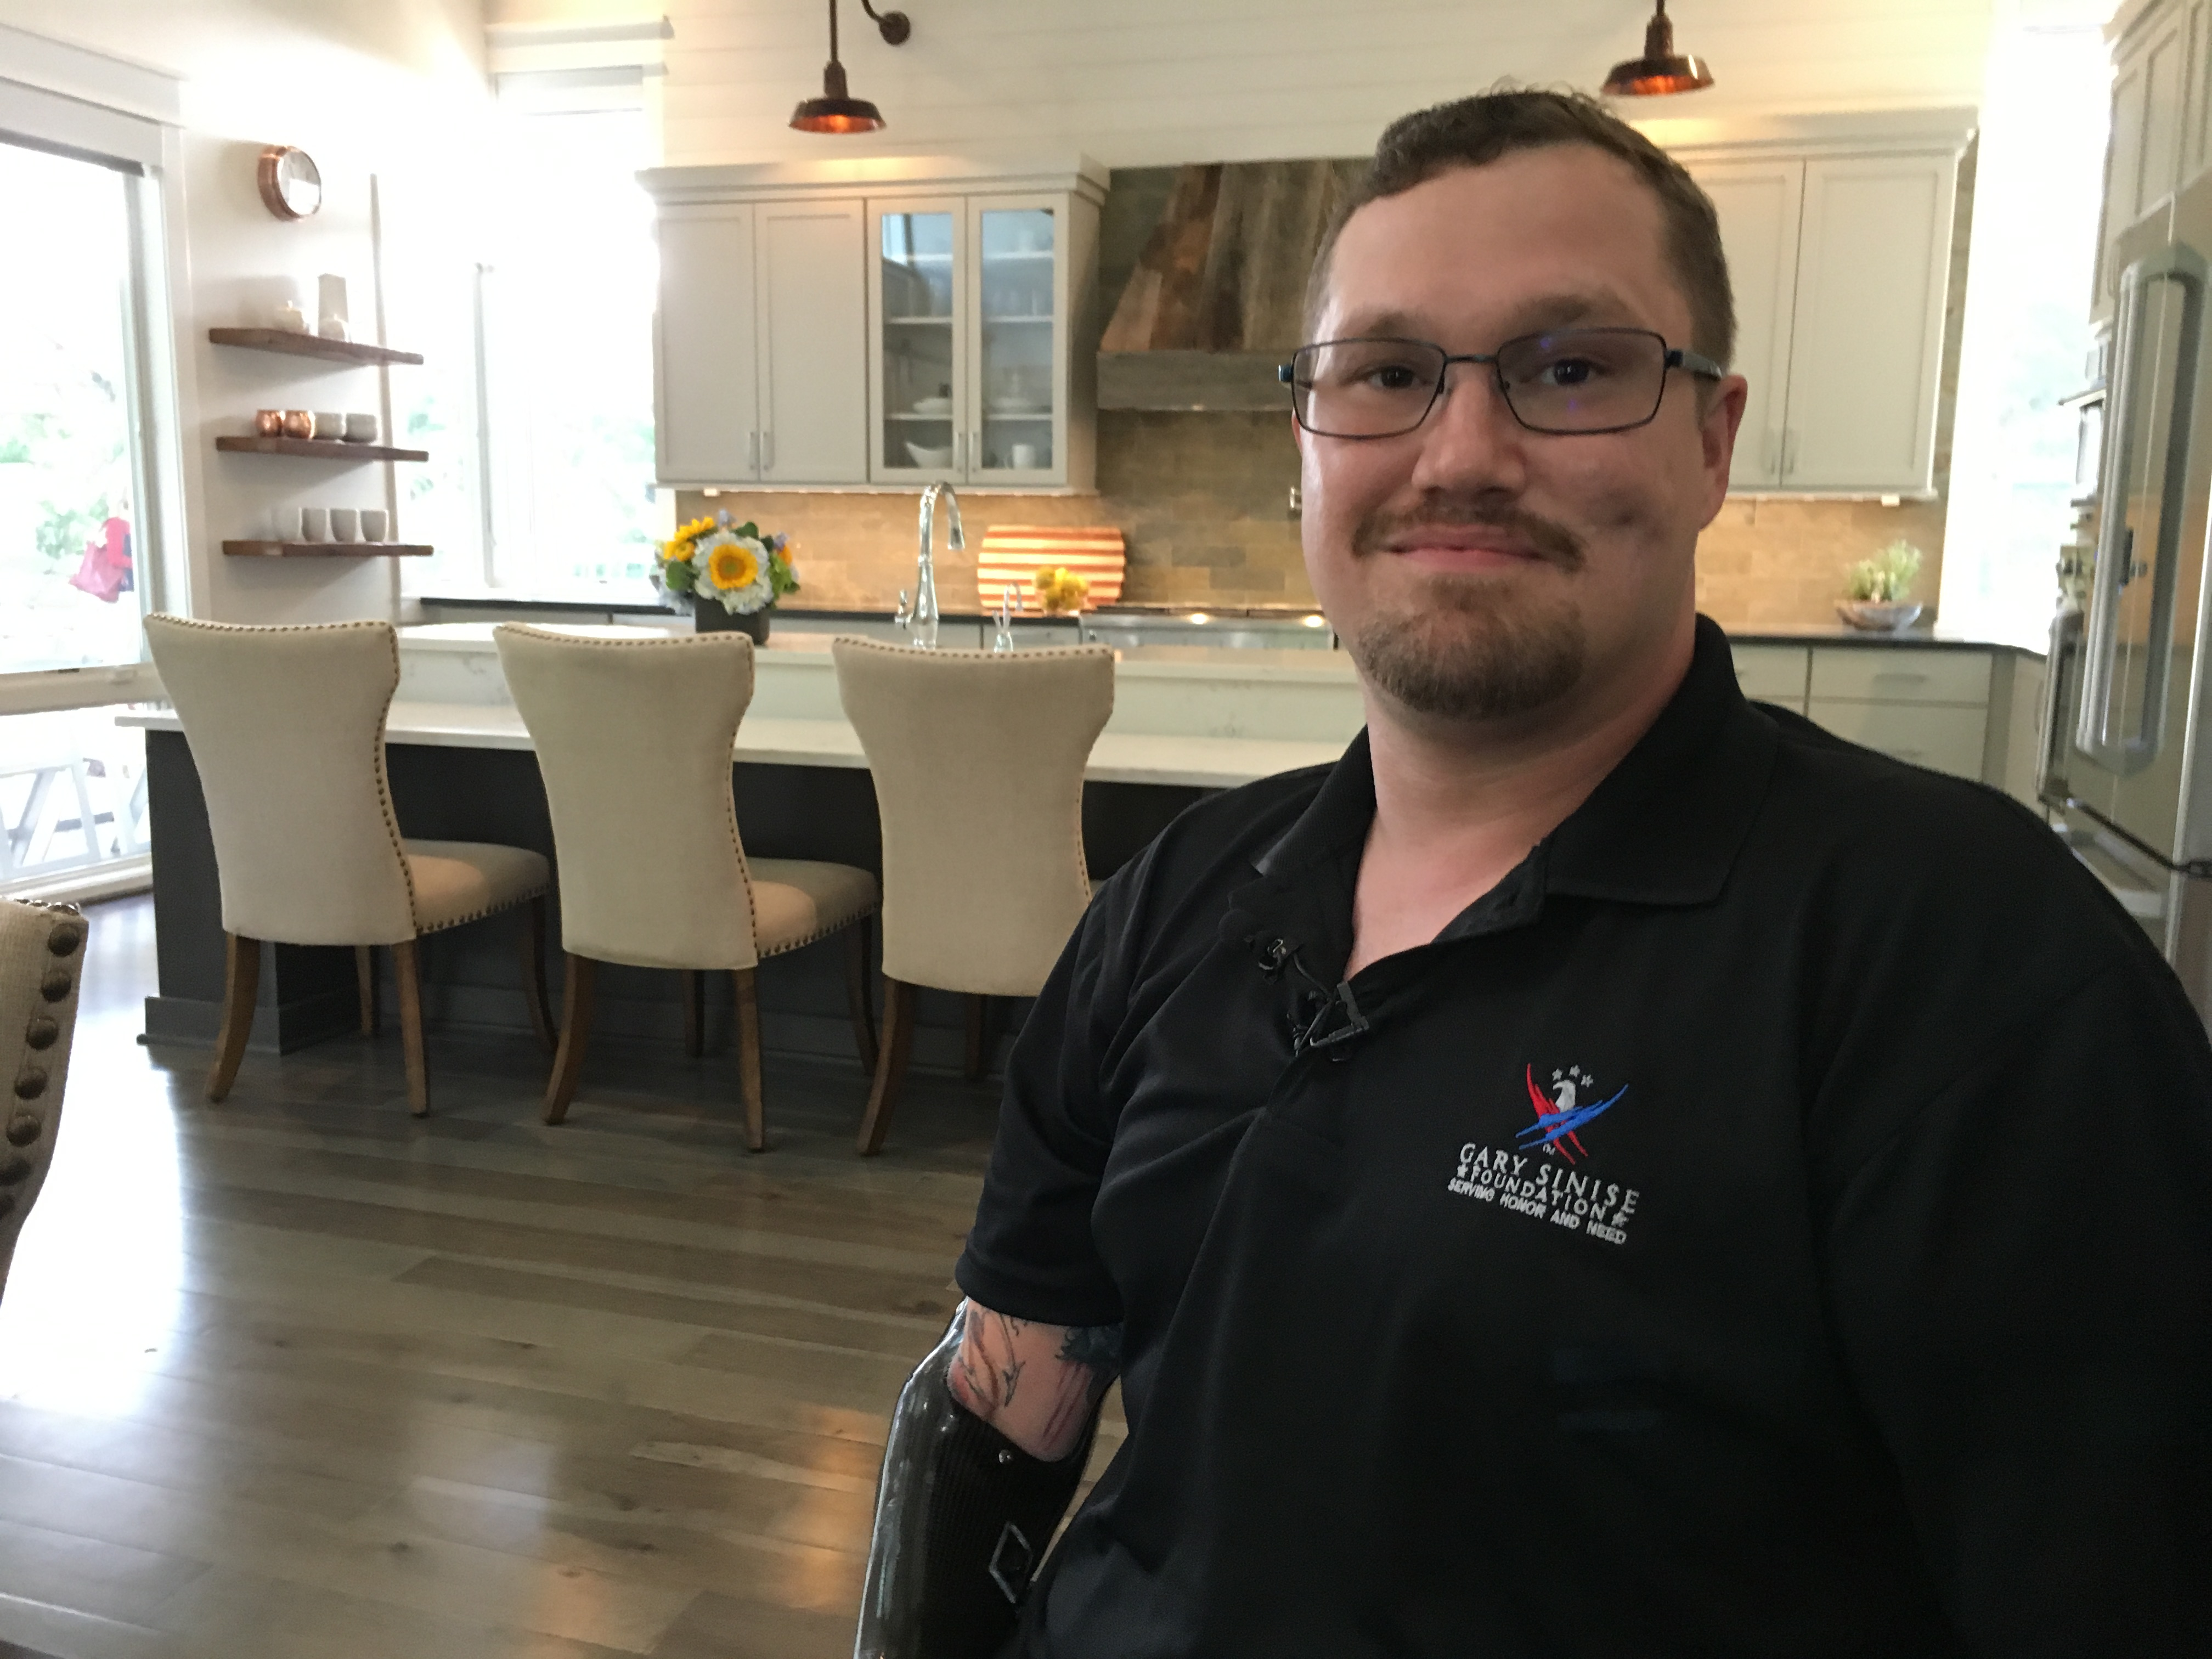 wusa9.com | Grievously wounded Army veteran gets a free home